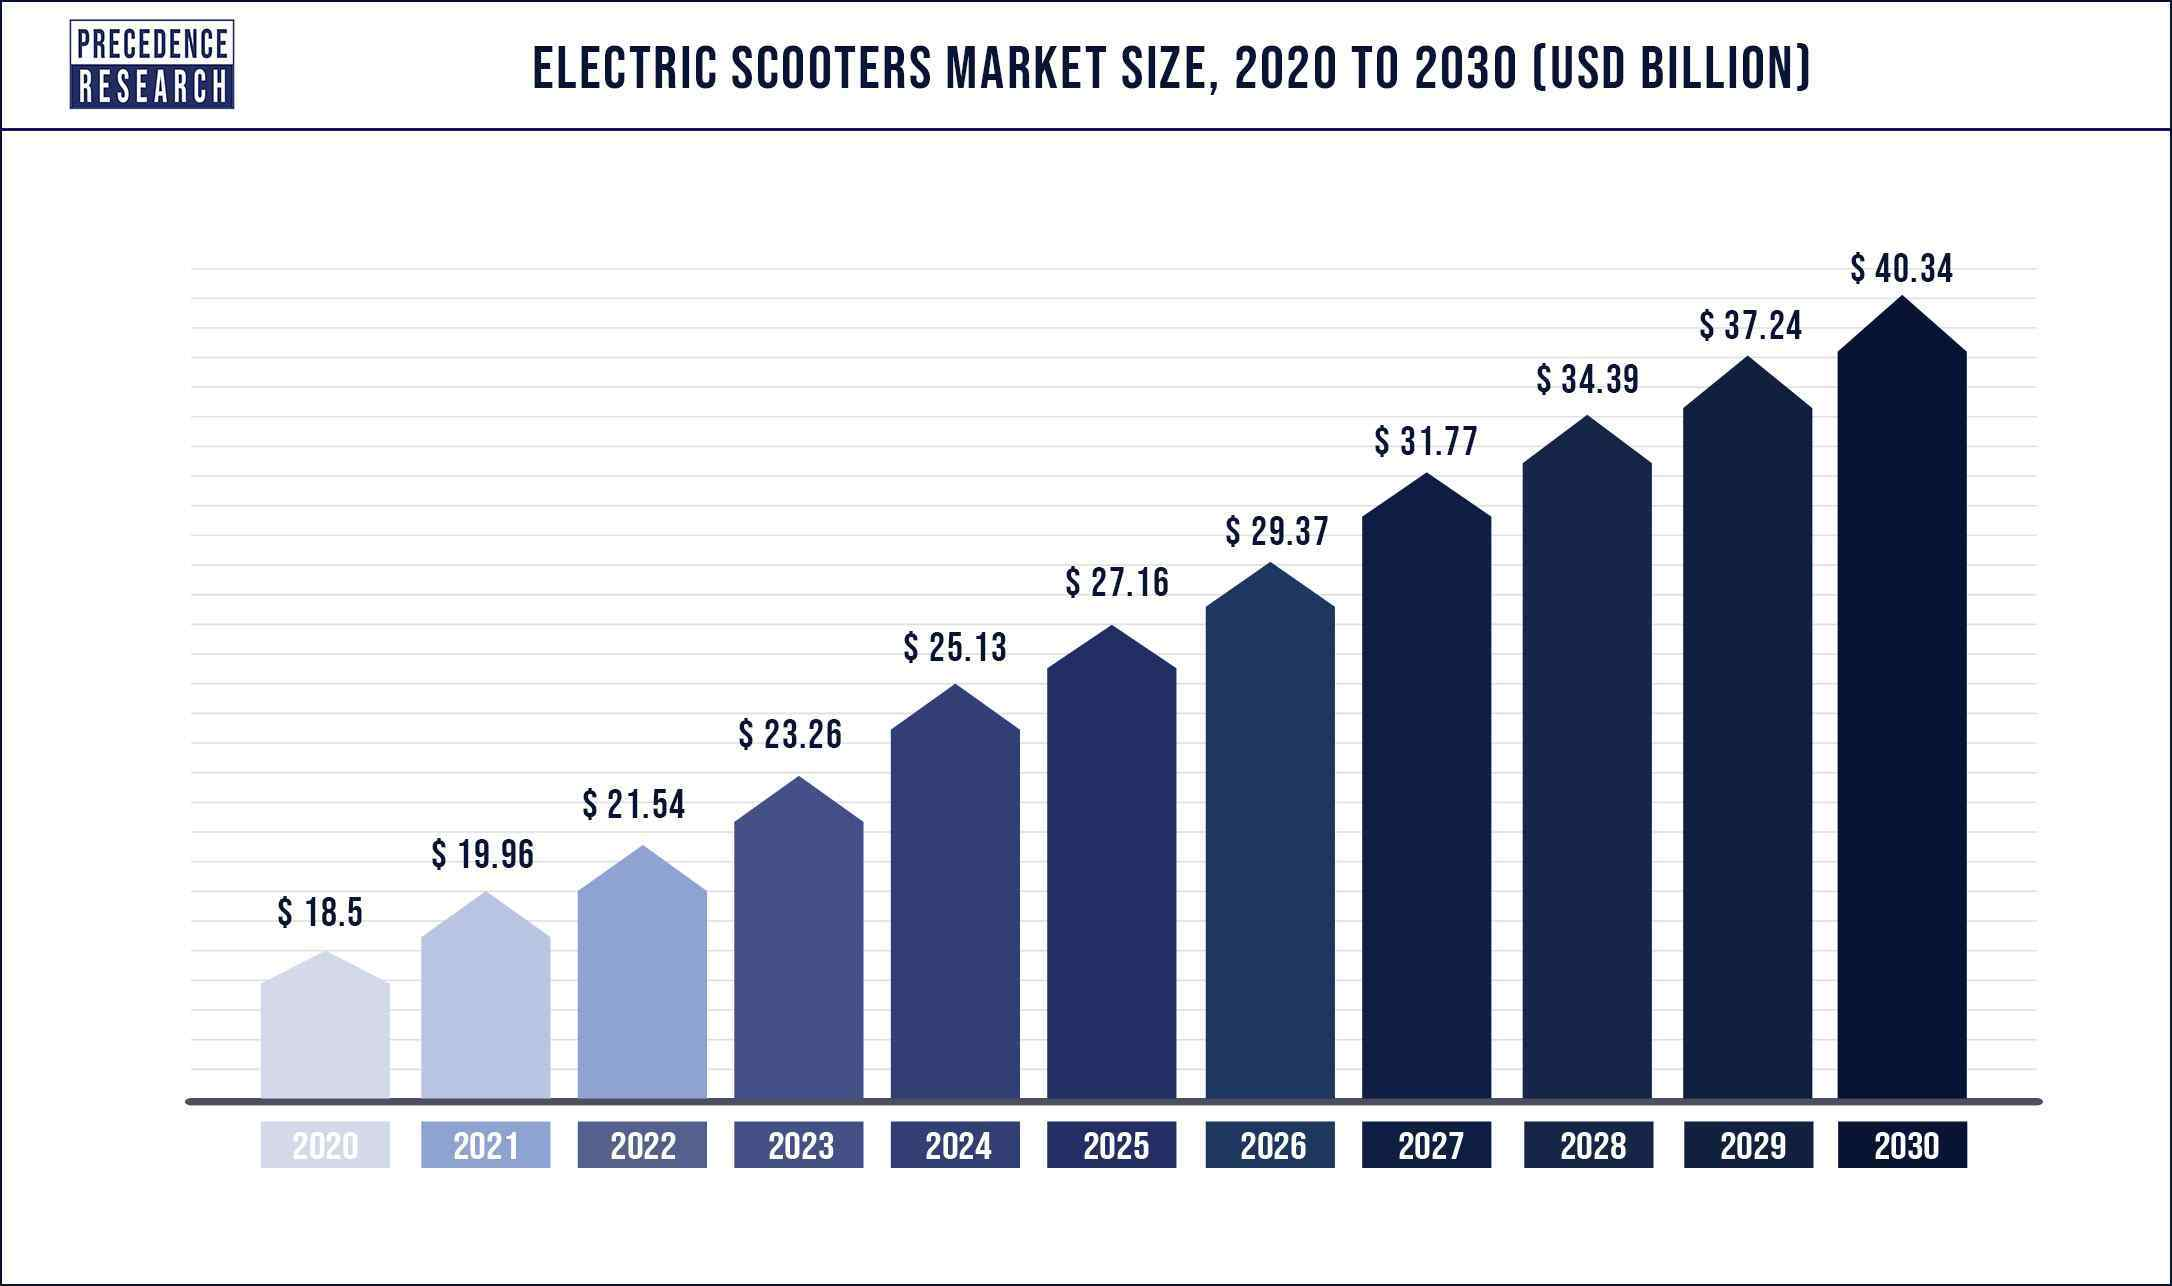 Electric Scooters Market Size 2020 to 2030